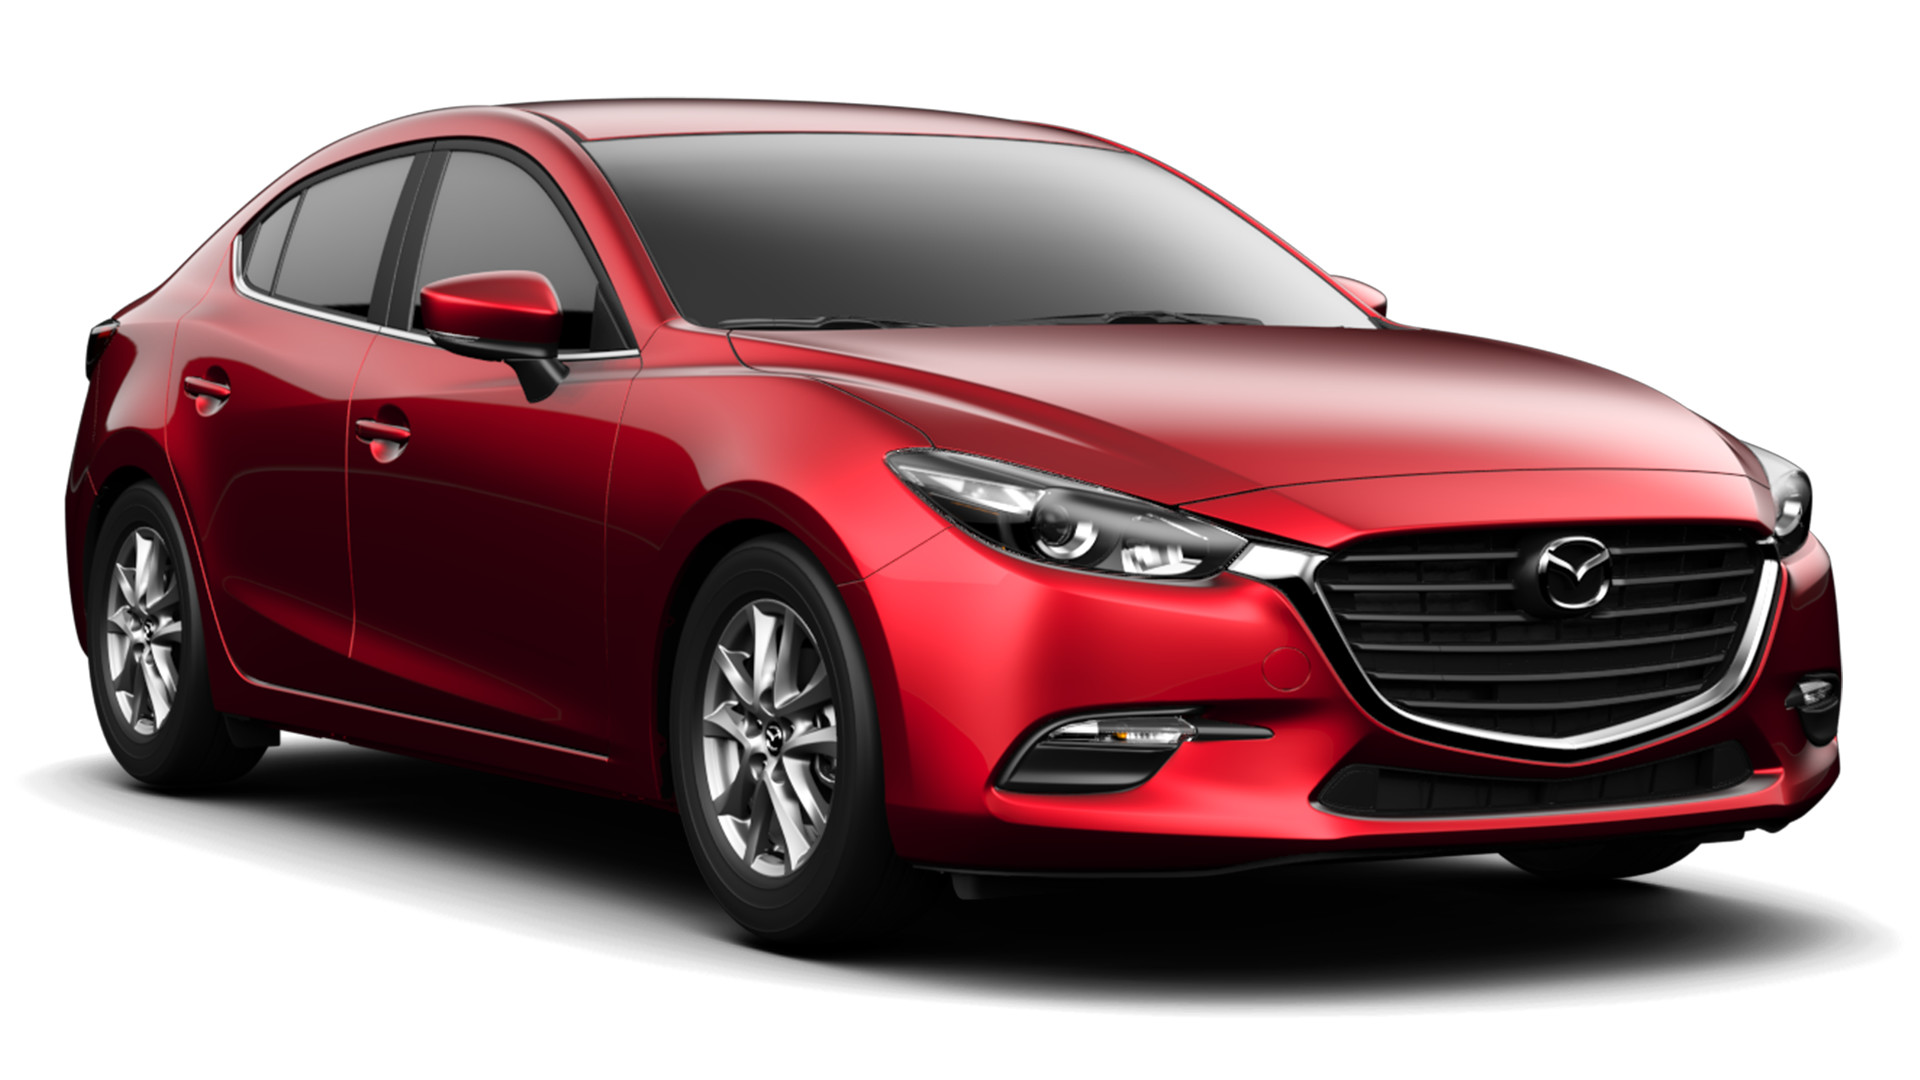 New Mazda 3 GS for sale in Edmonton, AB